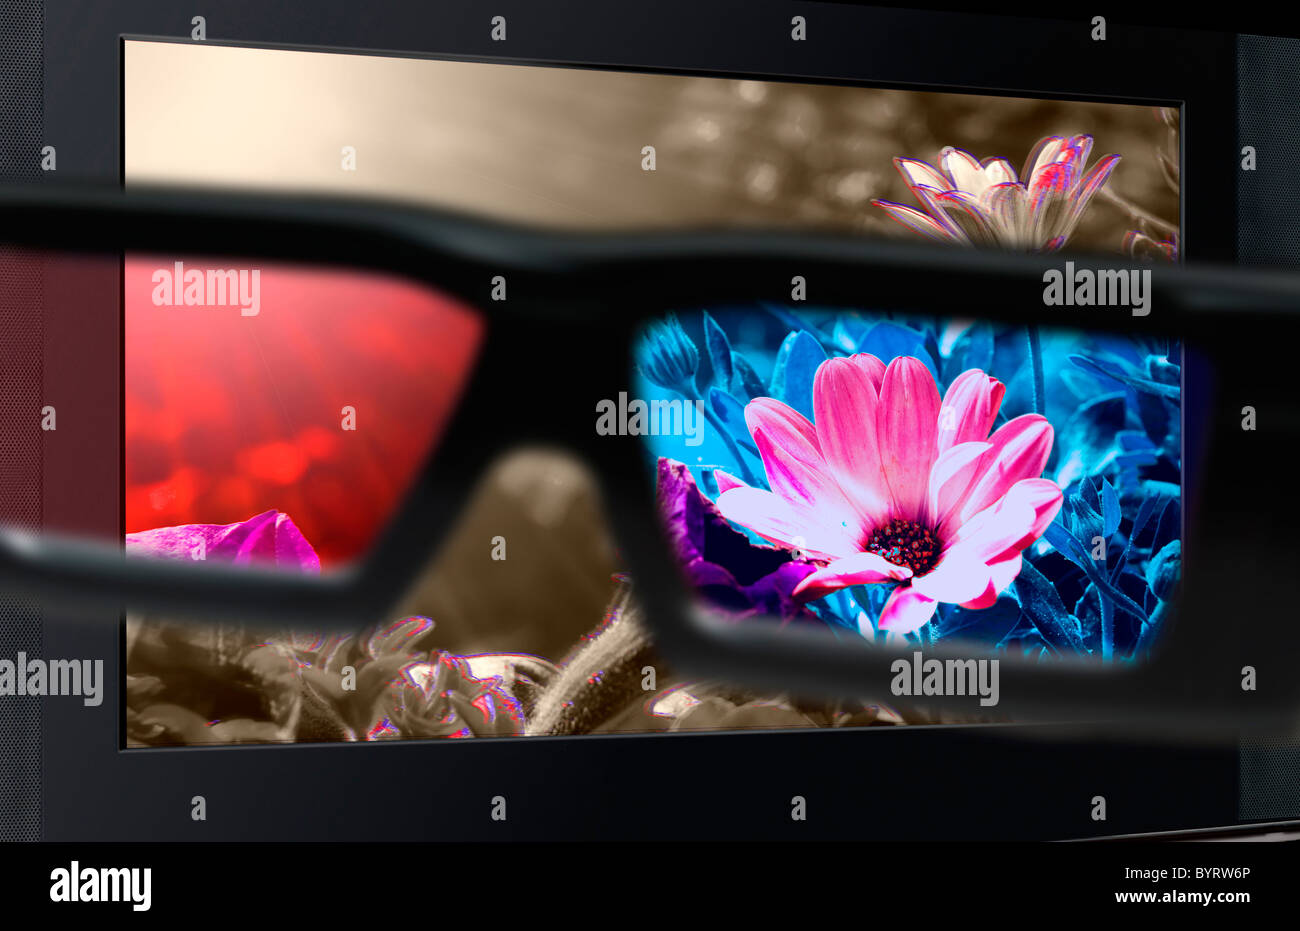 Glasses 3D in front of the TV with a flower. 3D television. - Stock Image